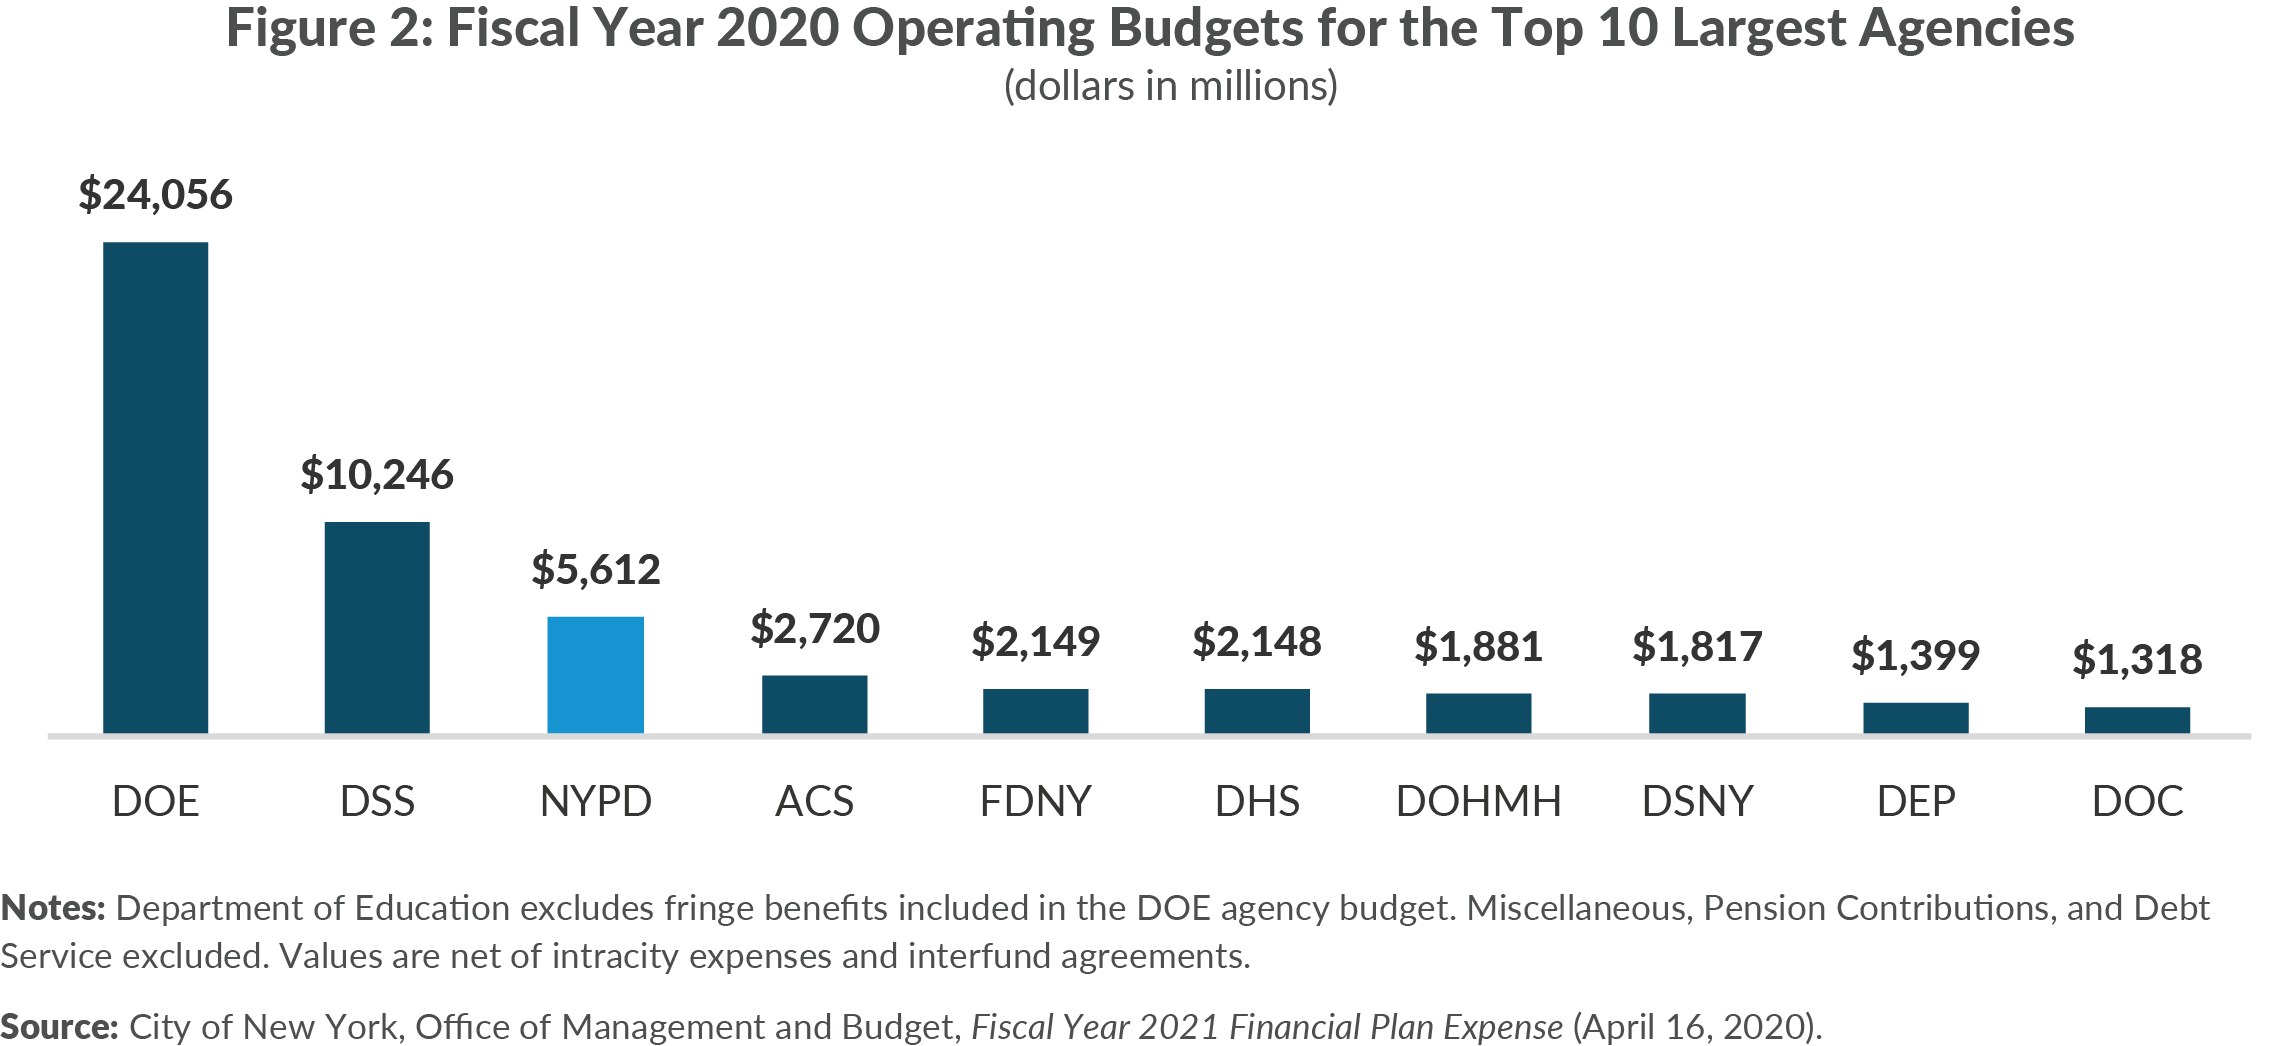 Figure 2. Fiscal Year 2020 Operating Budgets for the Top 10 Largest Agencies, dollars in millions